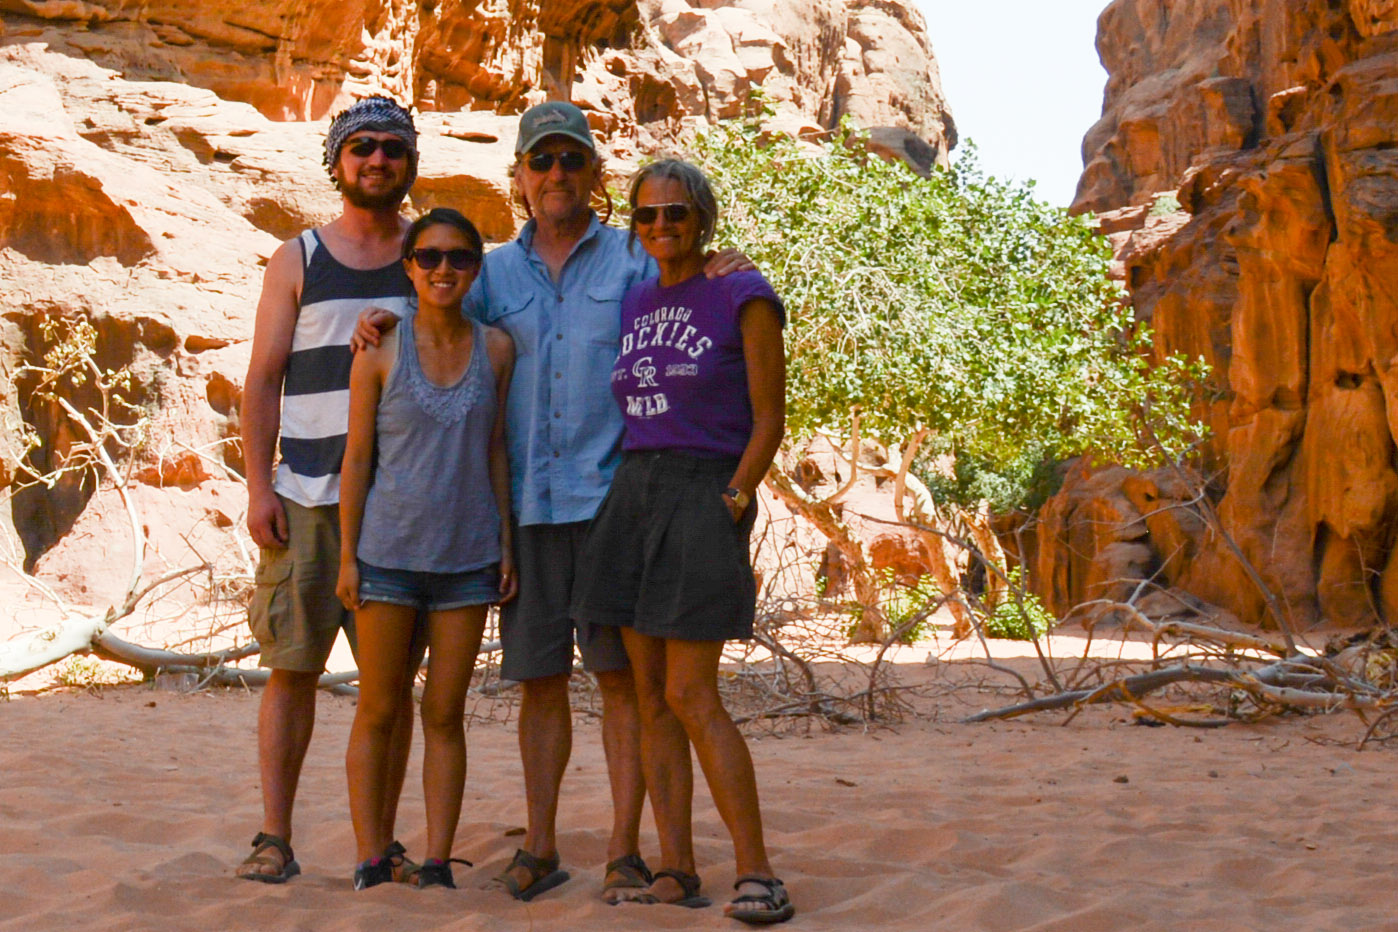 David in Wadi Rum, Jordan with Ben, Li, and Melinda